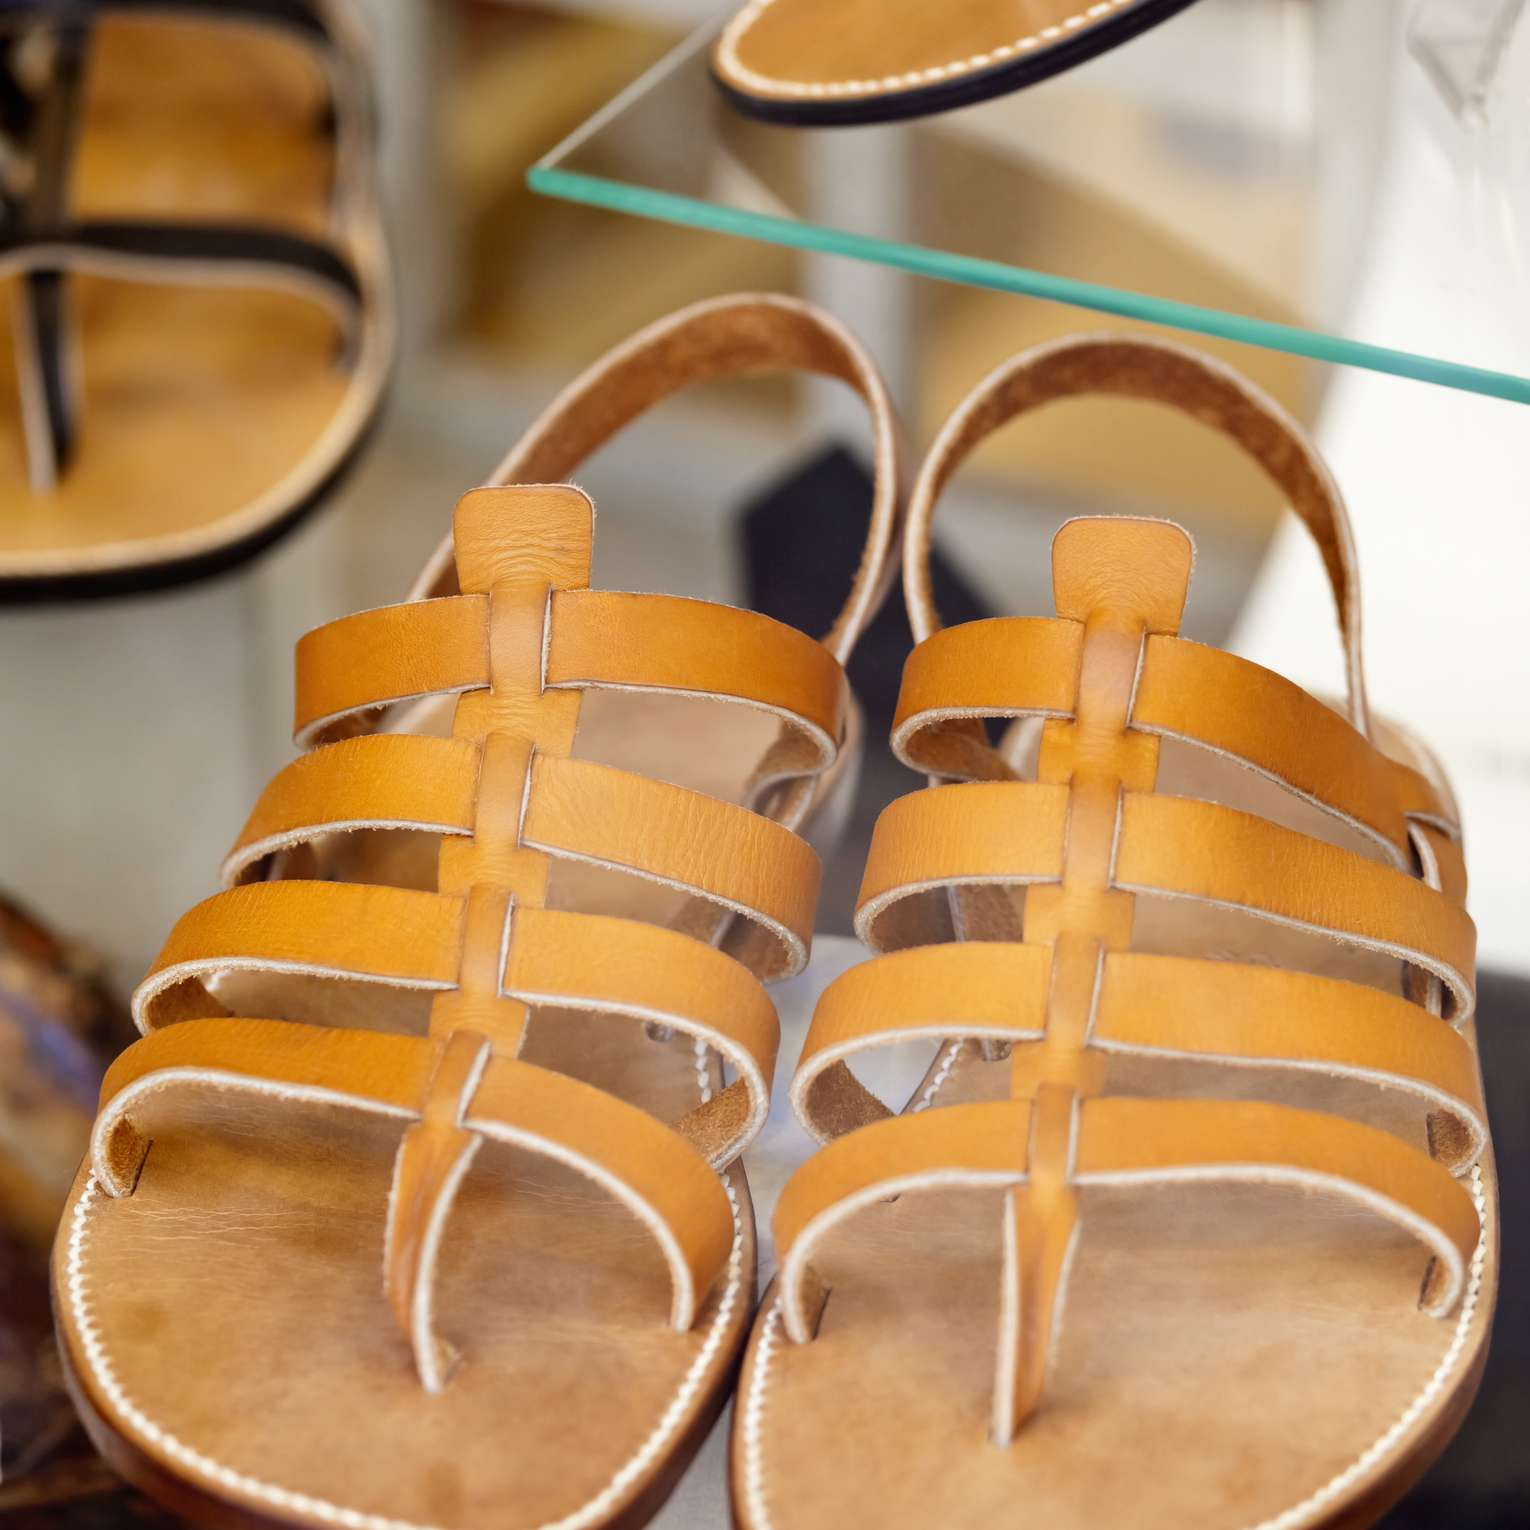 Rondini sandals from St-Tropez, France